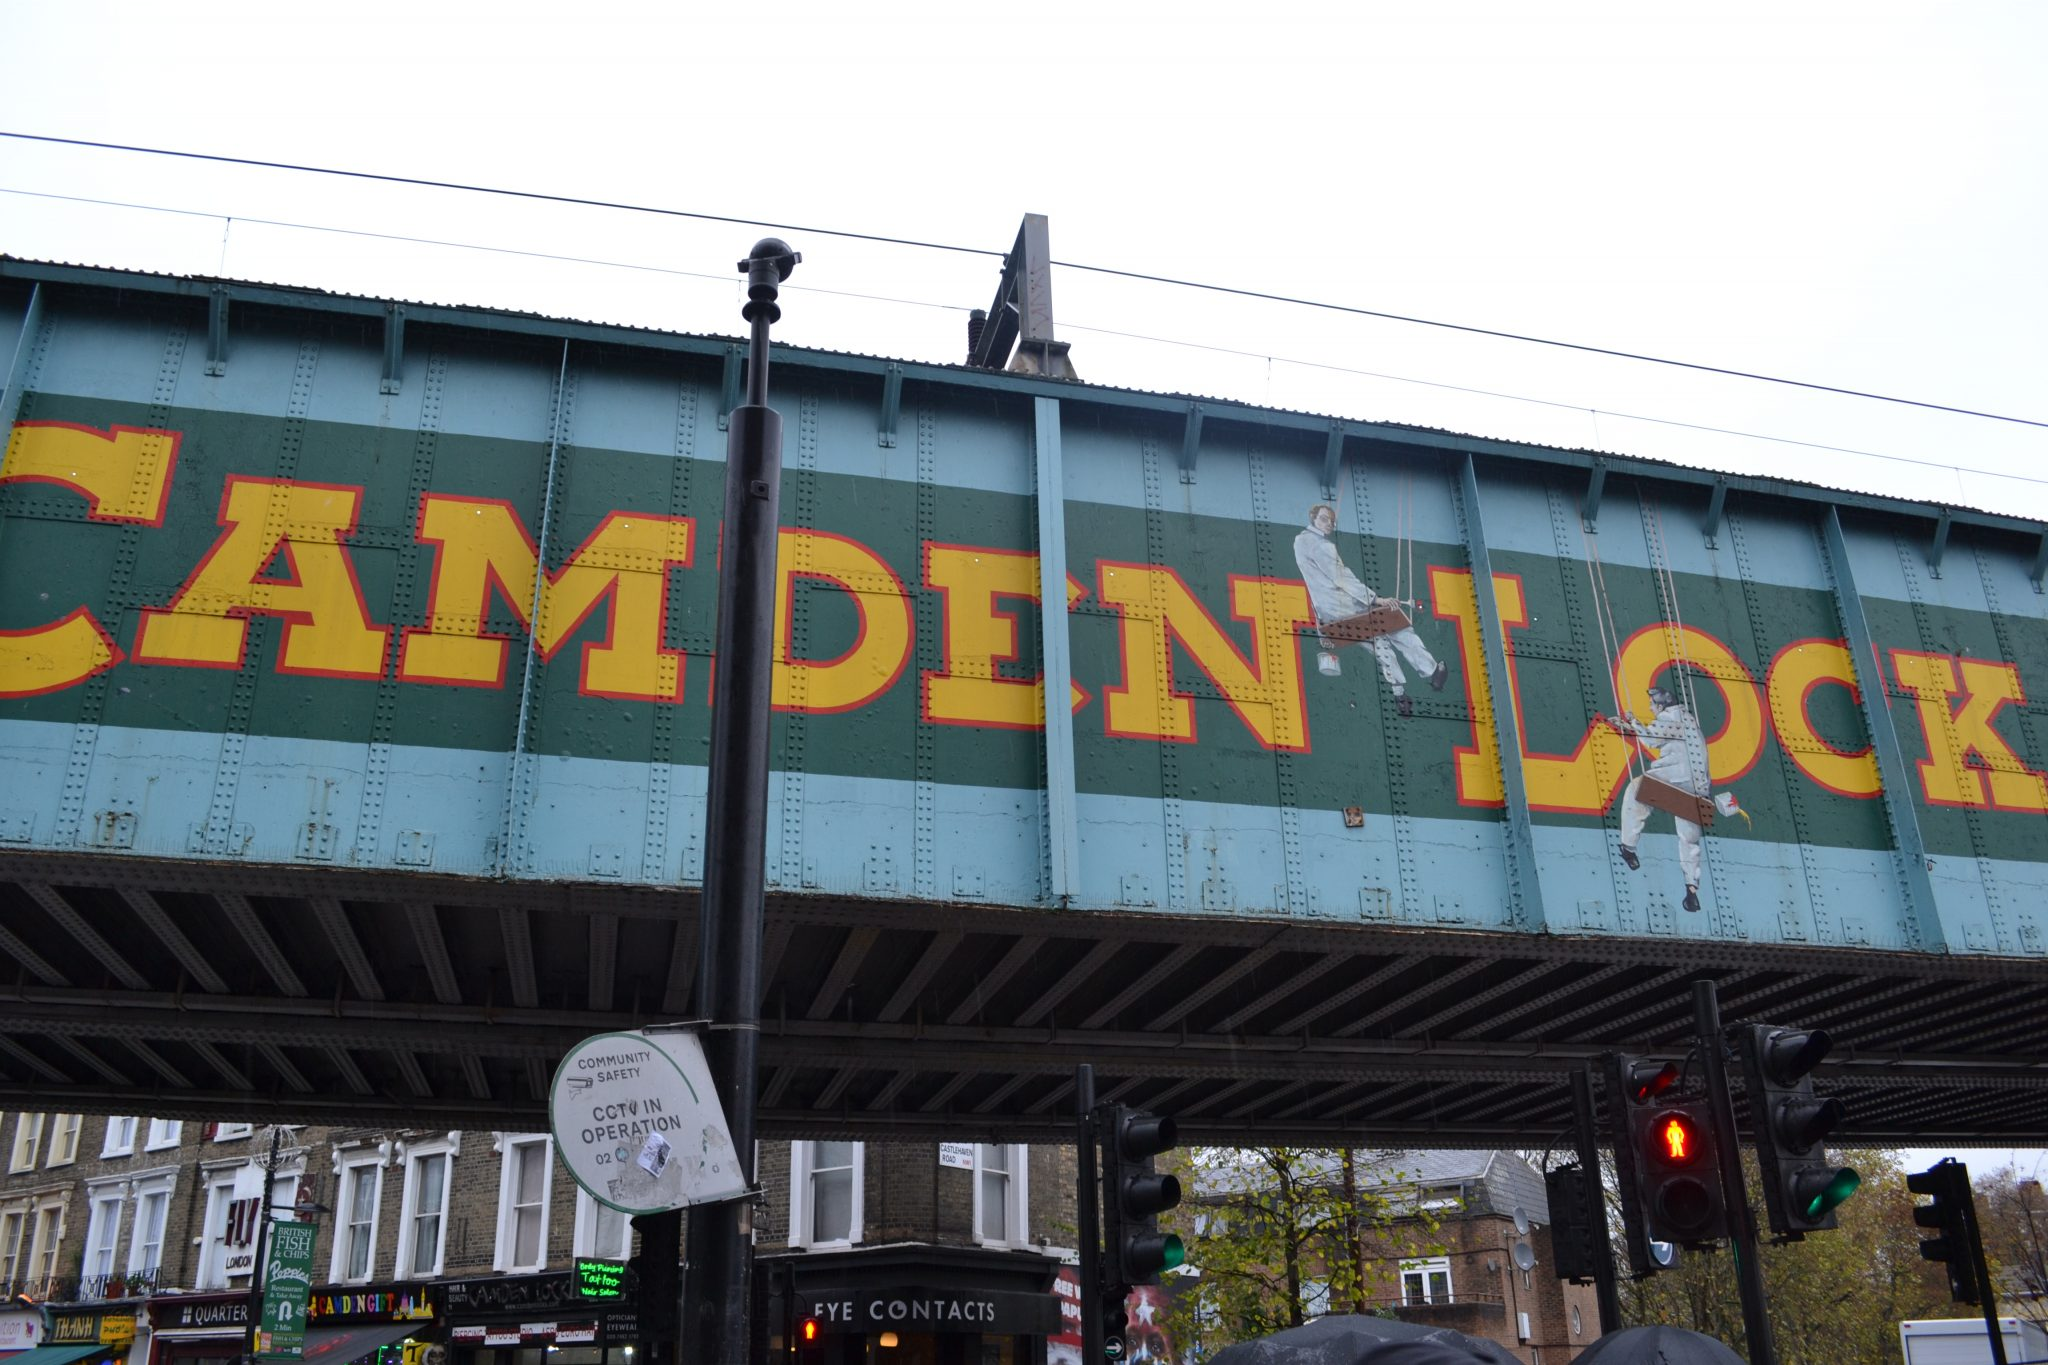 Travel Diary: Ein Wochenende in London | Camden